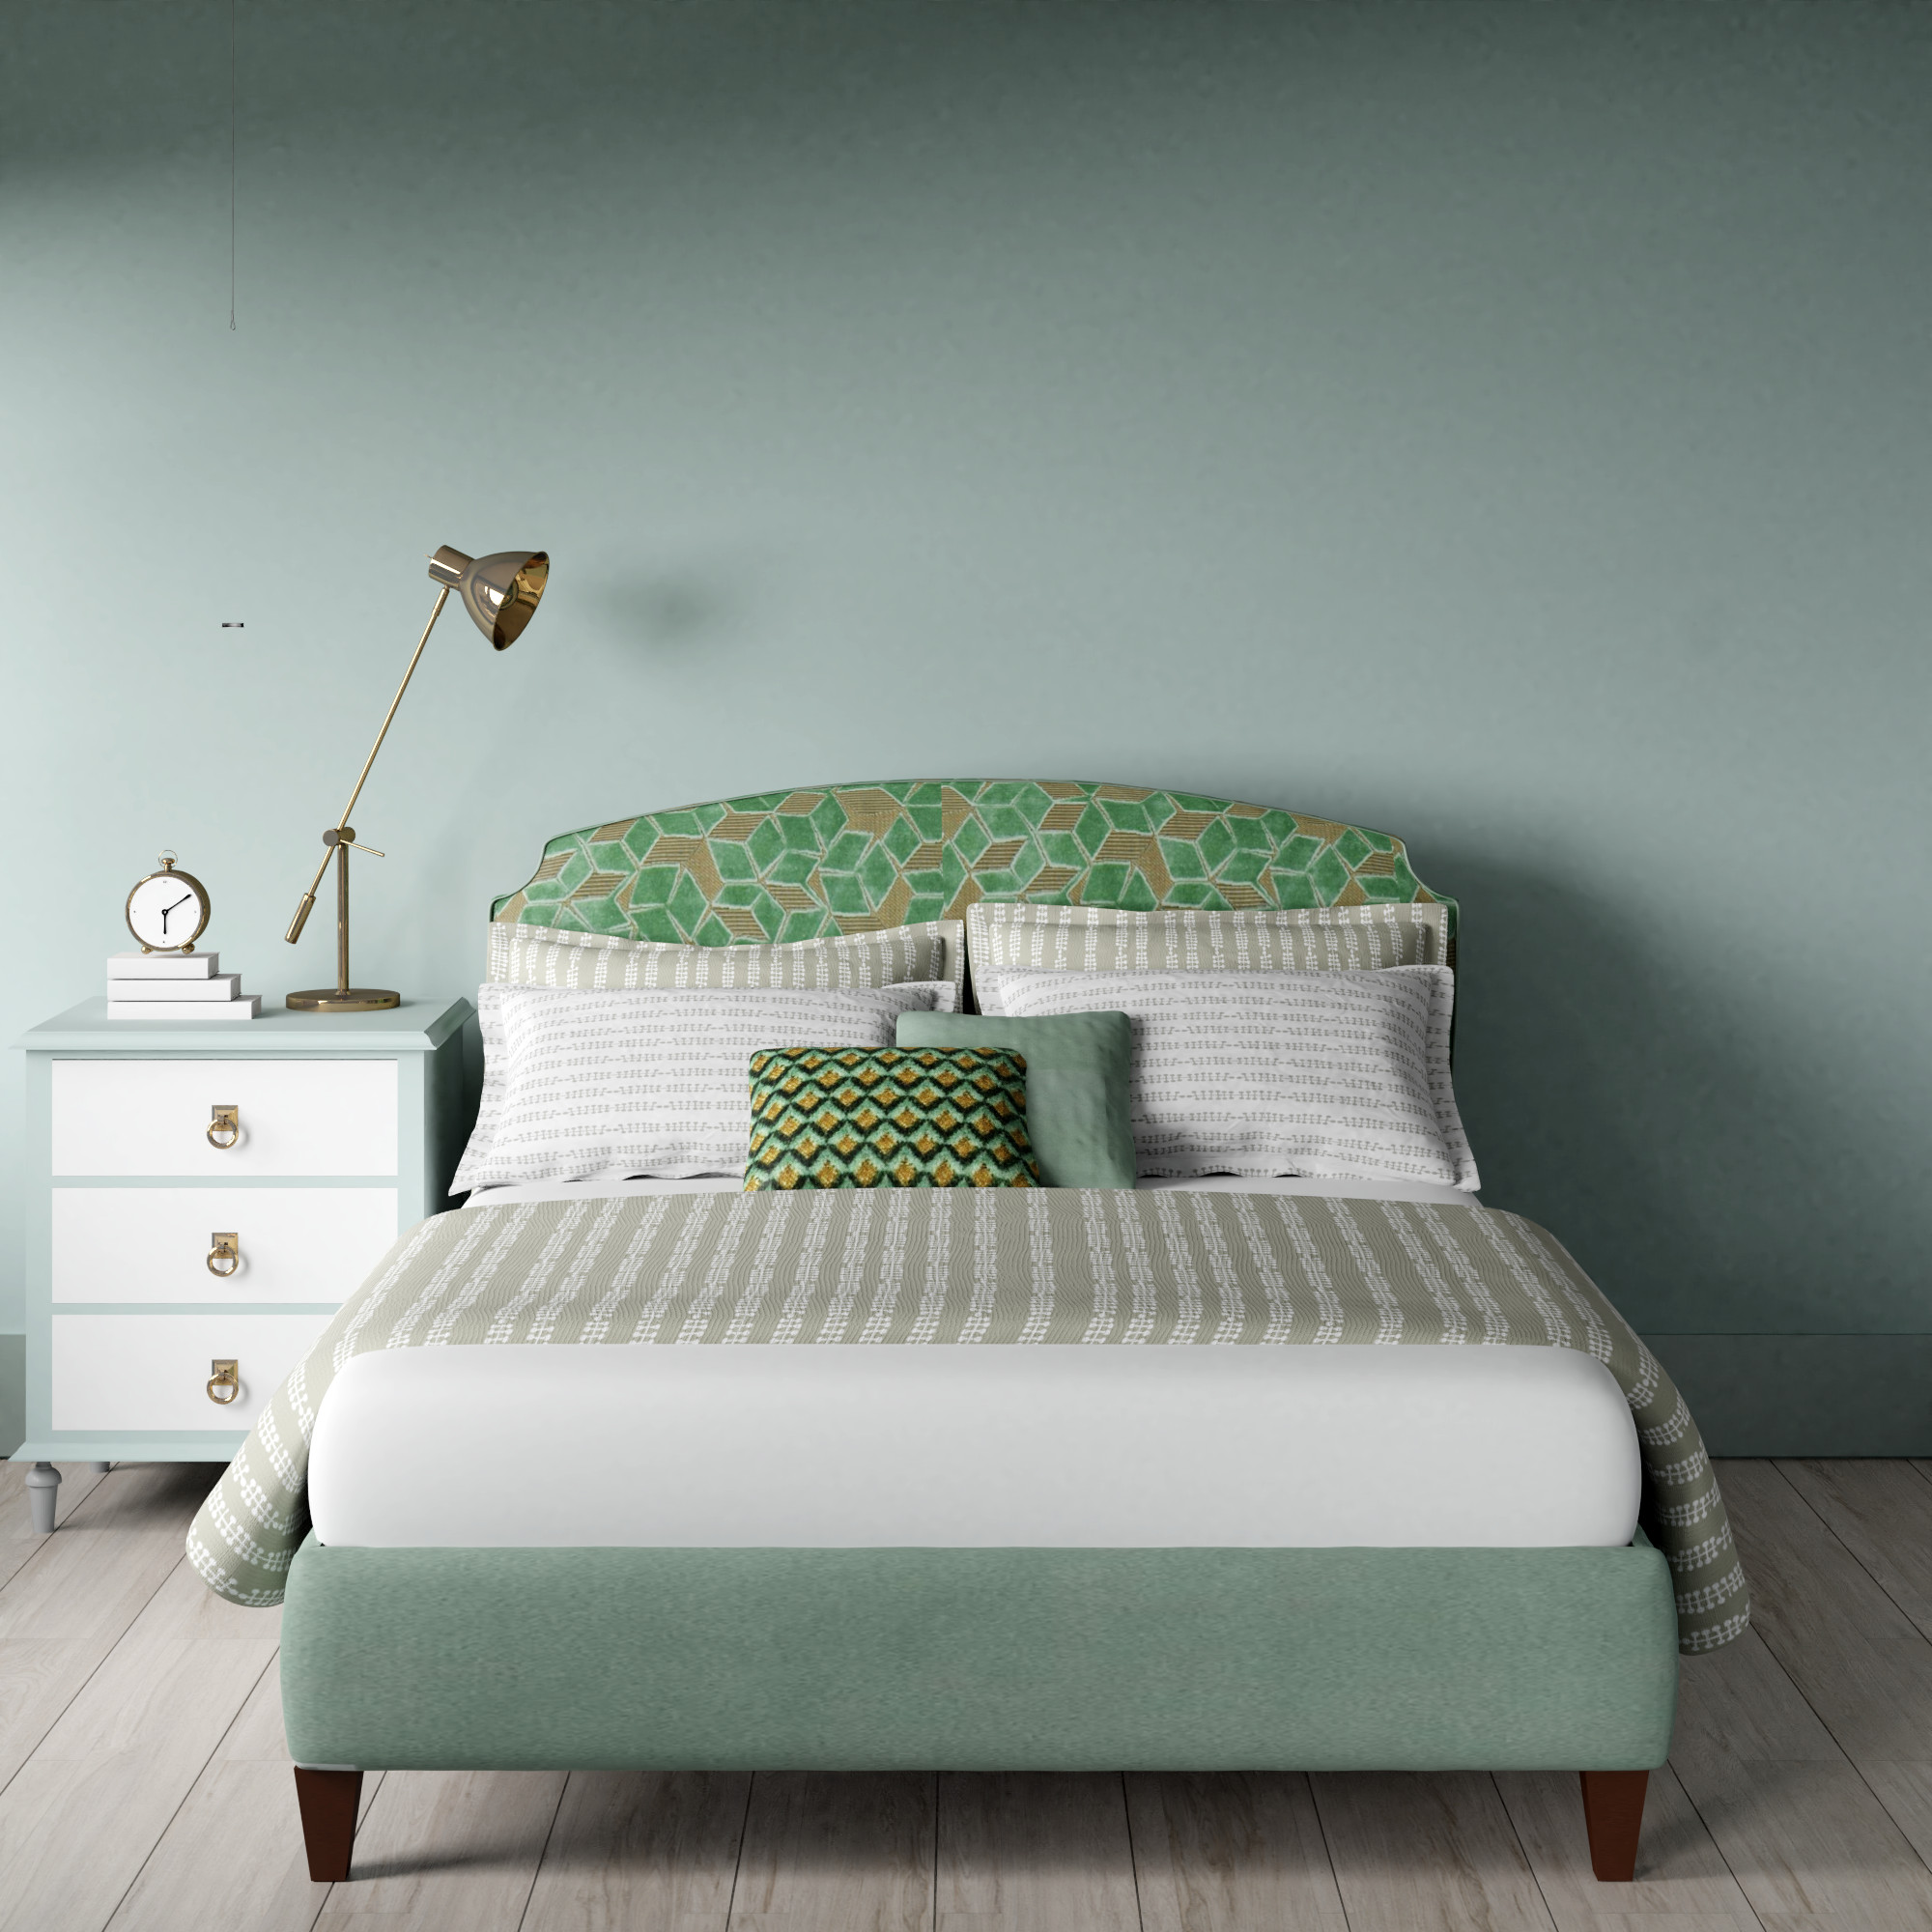 Lide upholstered bed in mint green